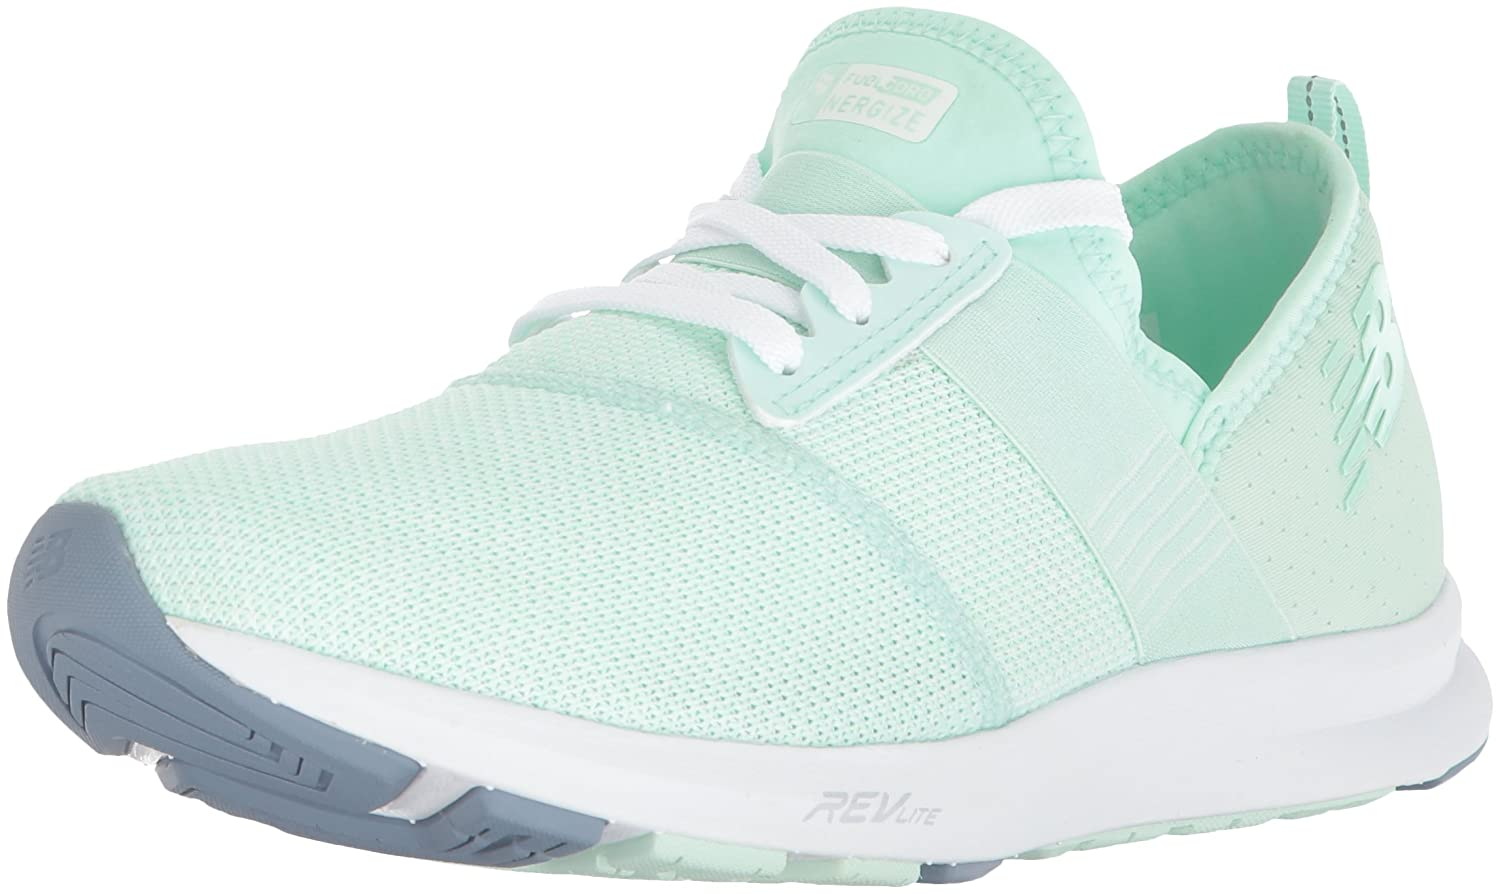 New Balance Women's FuelCore Nergize V1 Fuel Core Cross Trainer B0751QM4W2 8.5 D US|Seafoam/White